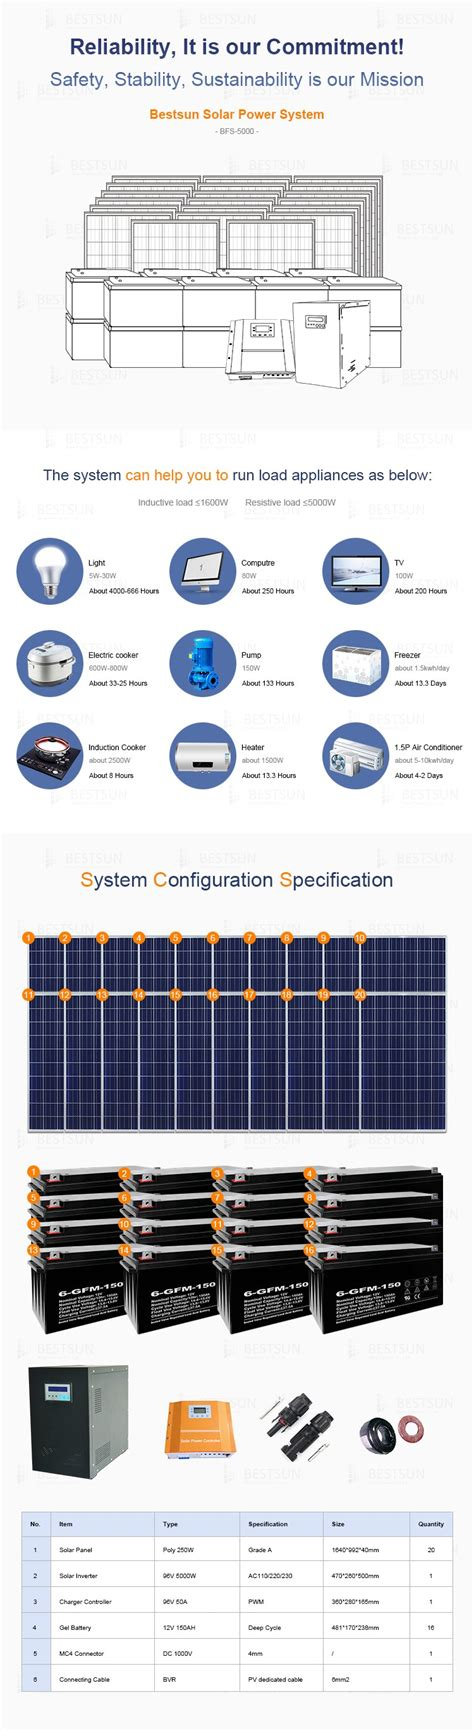 grid solar living total solar conversion for your home on a budget outdoor cooking with solar books renewable energy and green solutions living the grid